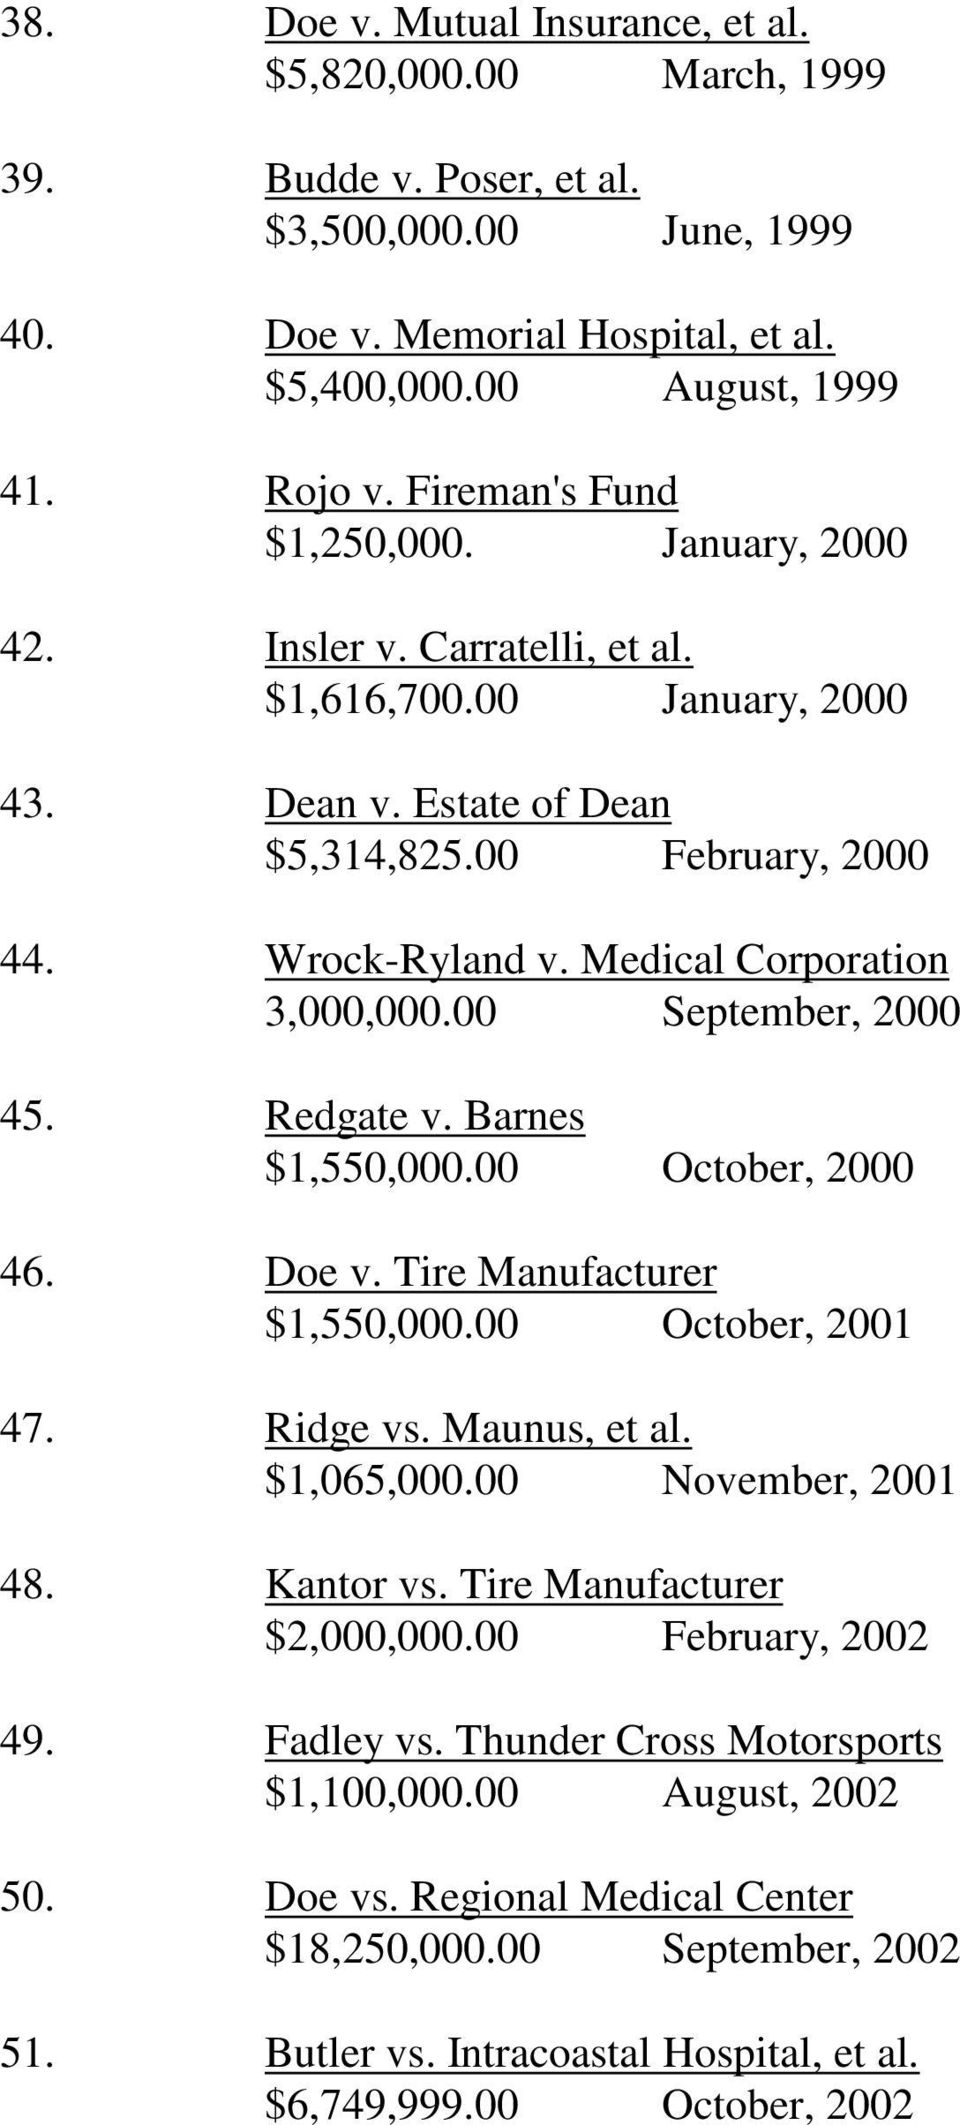 Medical Corporation 3,000,000.00 September, 2000 45. Redgate v. Barnes $1,550,000.00 October, 2000 46. Doe v. Tire Manufacturer $1,550,000.00 October, 2001 47. Ridge vs. Maunus, et al. $1,065,000.